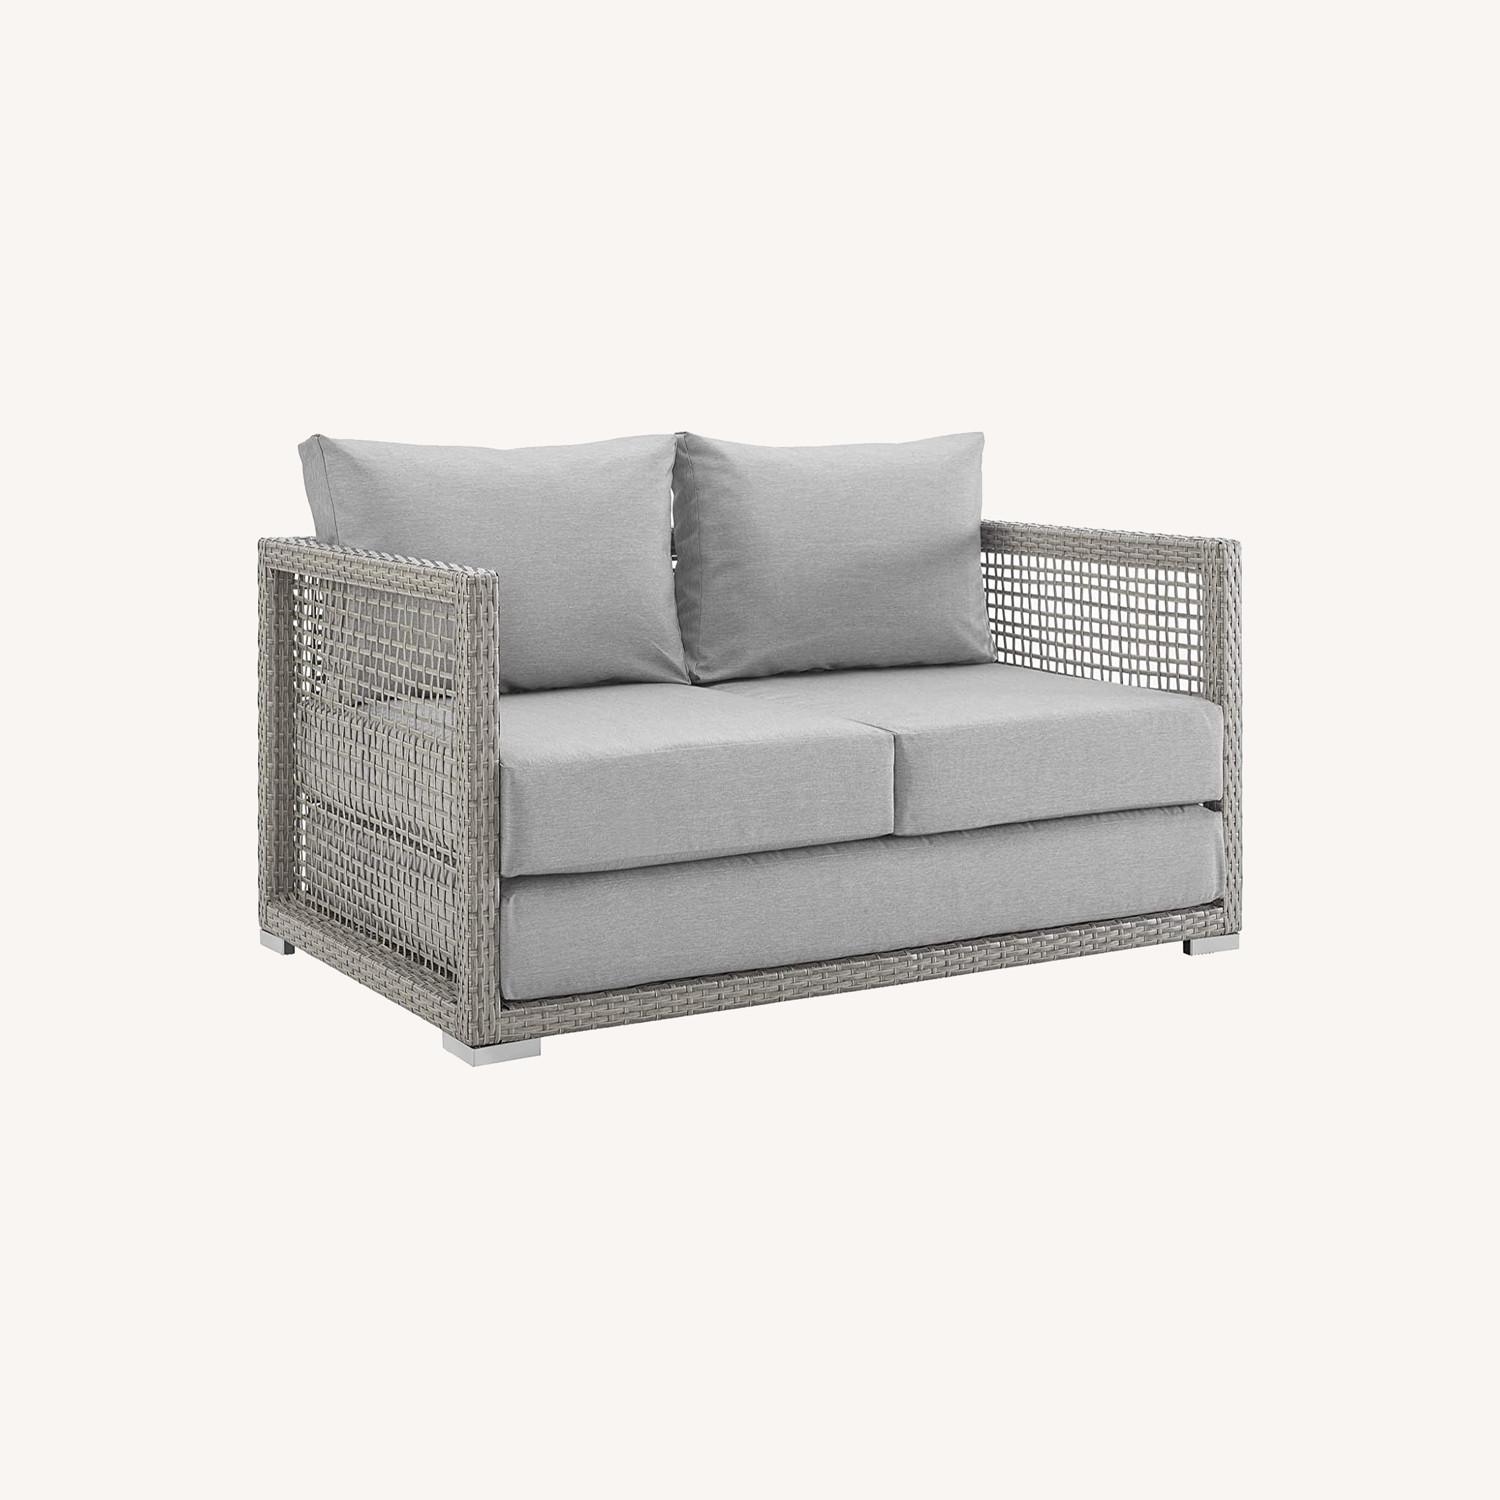 Outdoor Loveseat In Gray Rattan Weave Frame - image-10